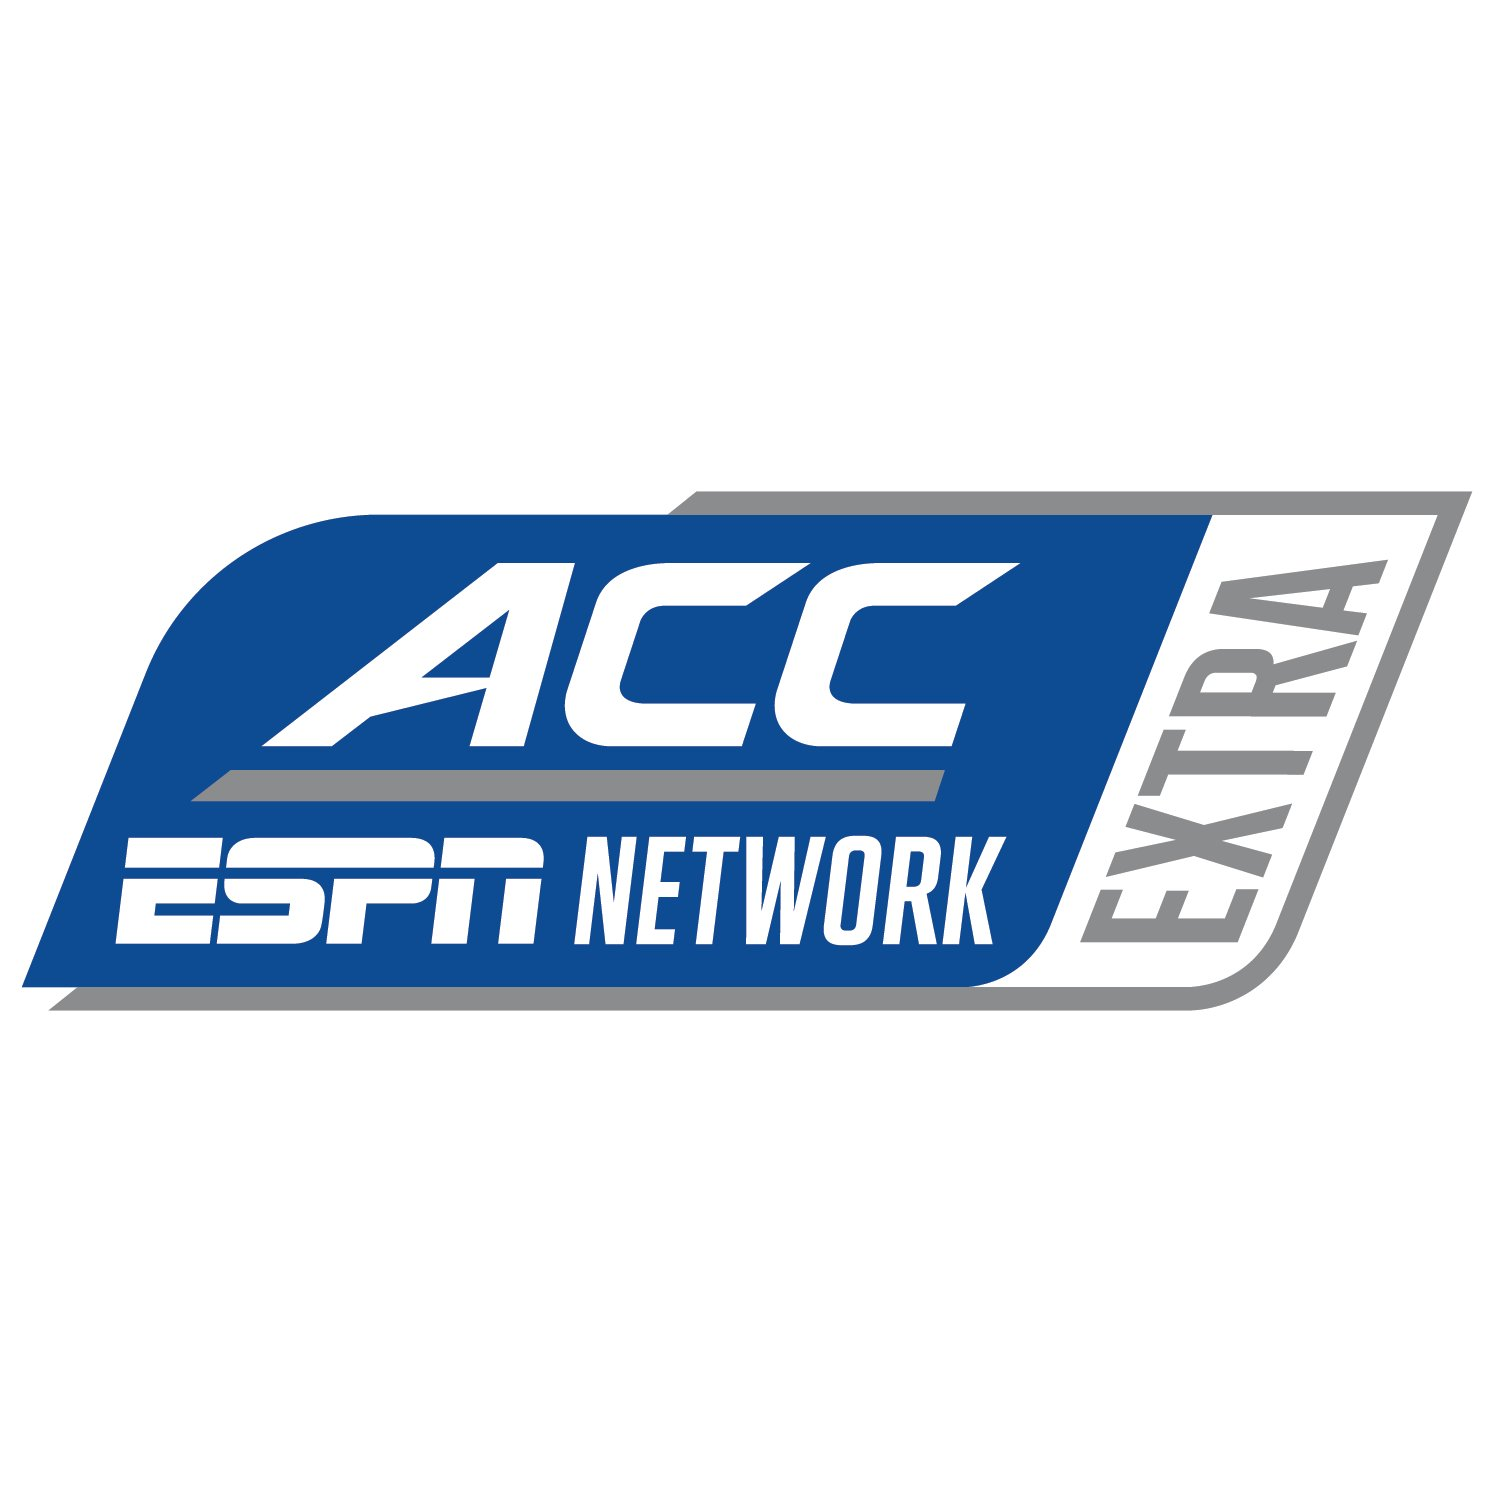 acc network extra accnetworkextra twitter